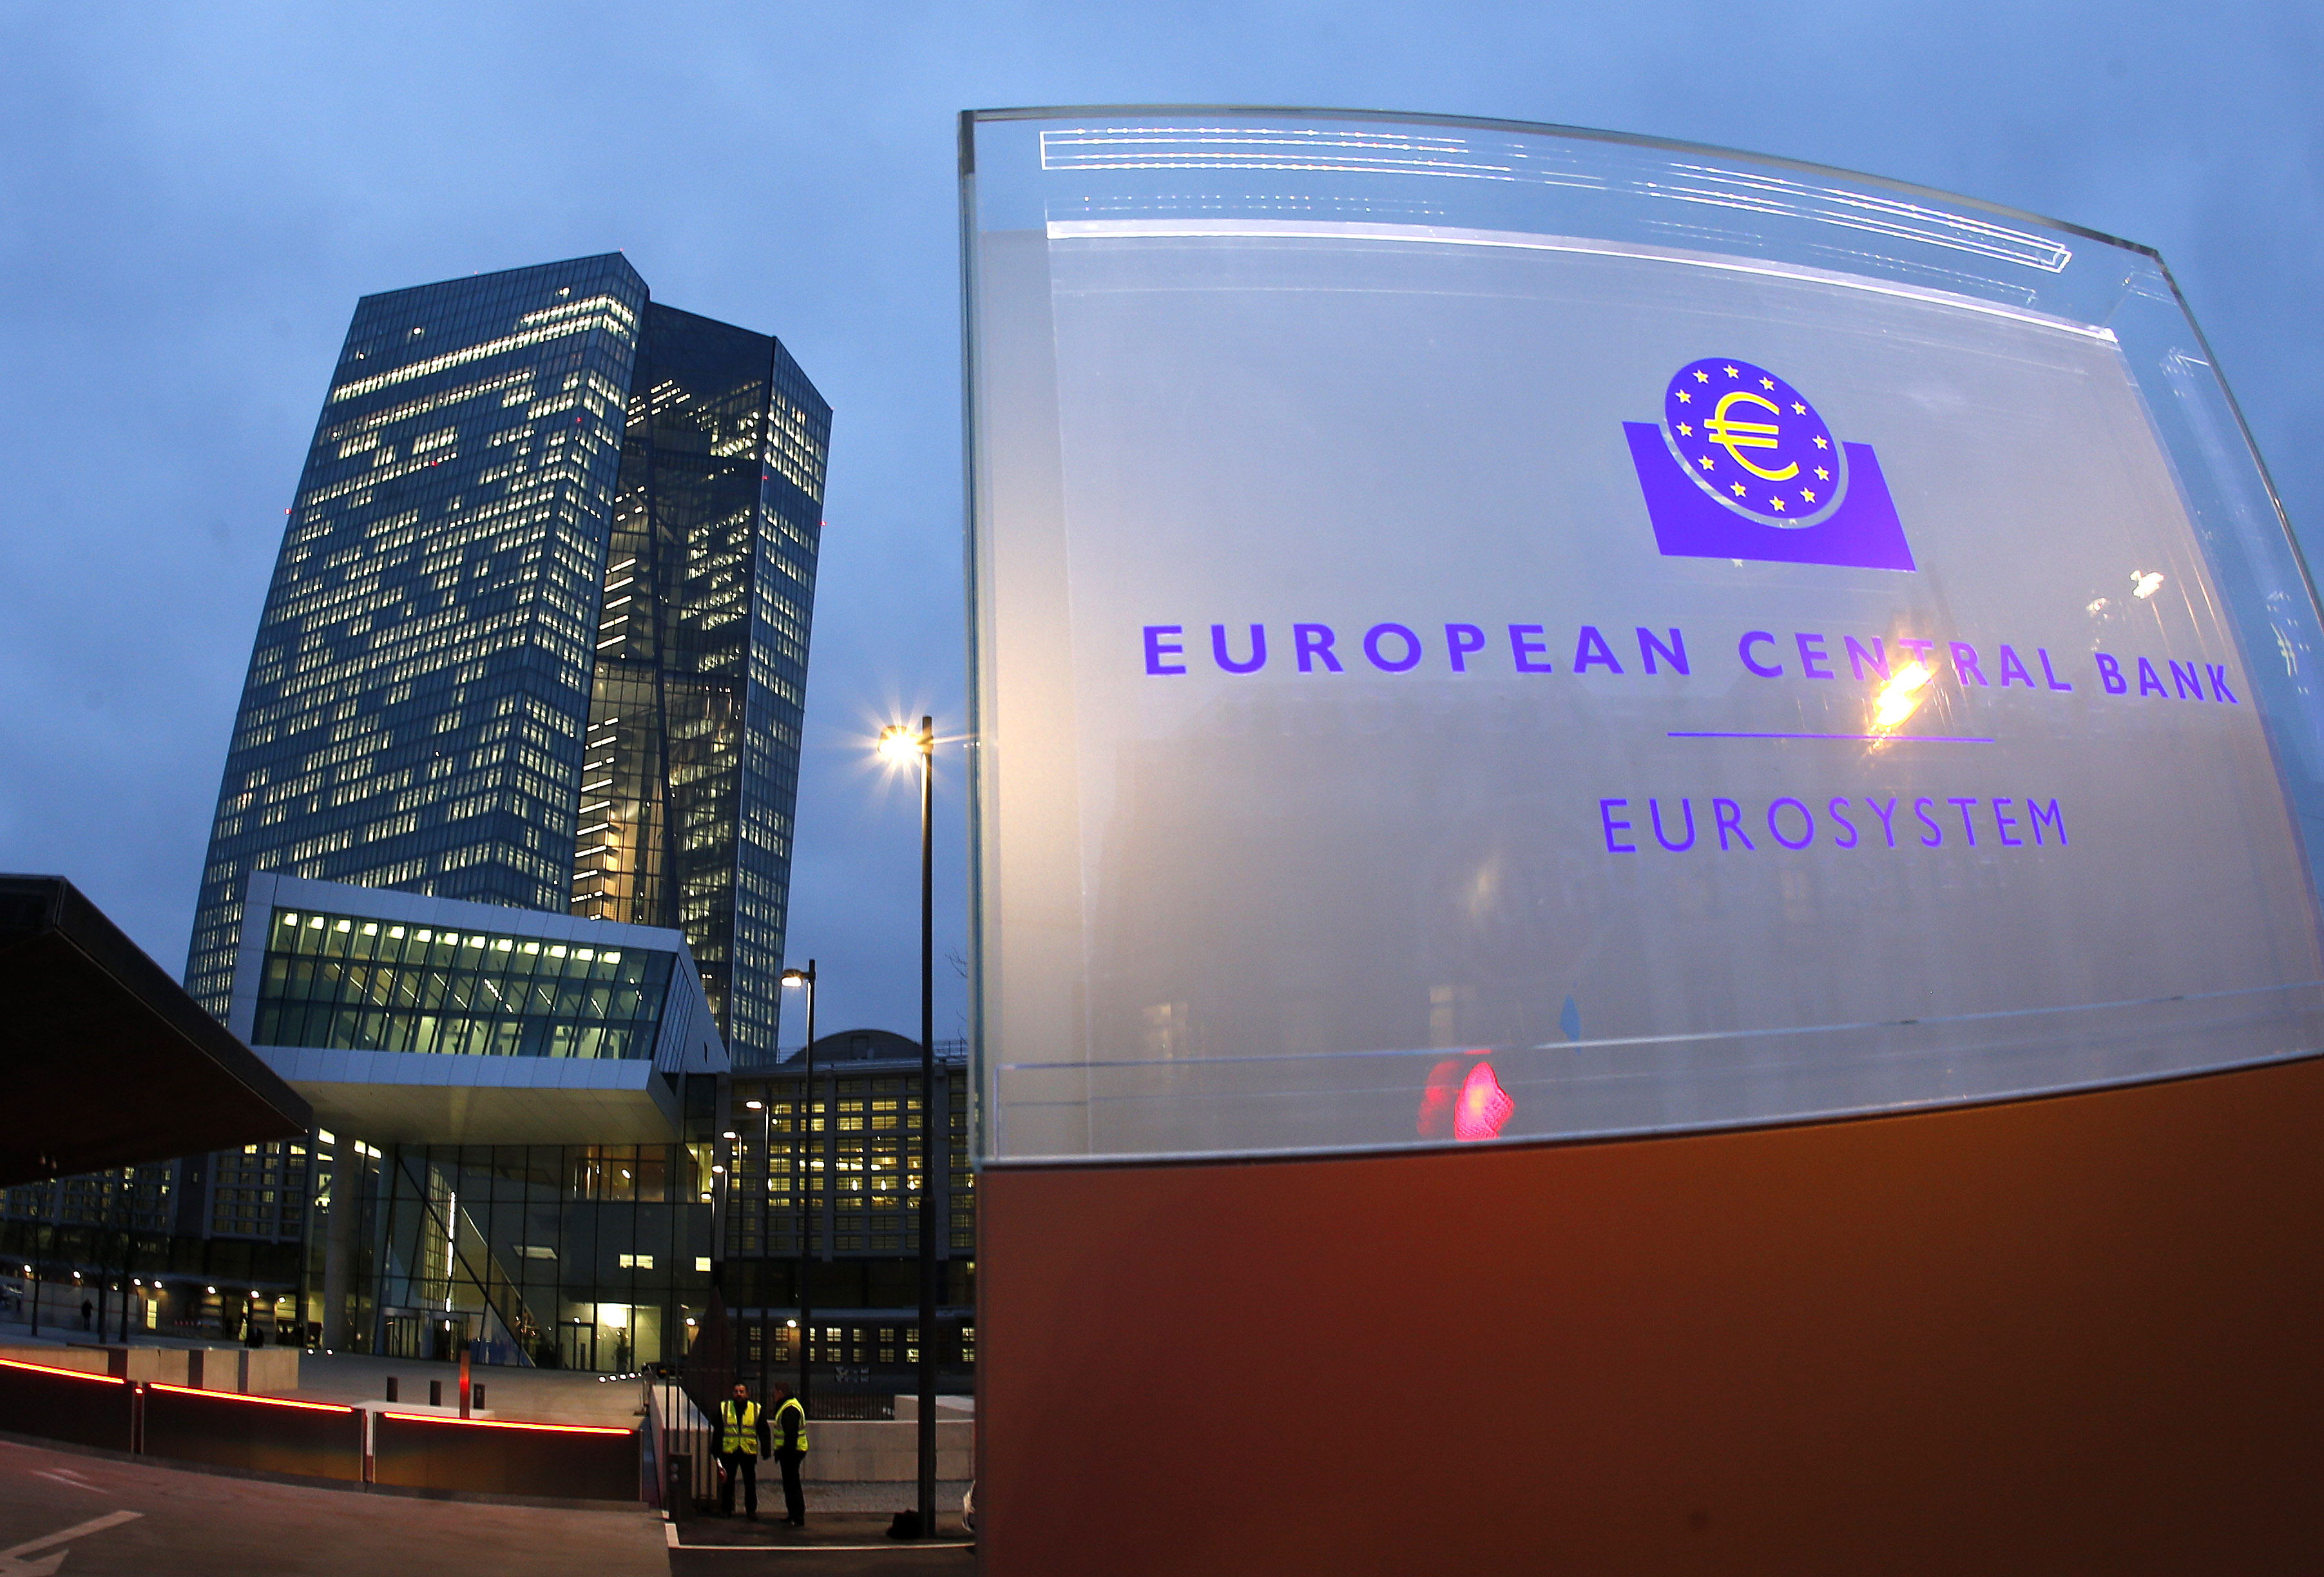 a history of the euro in the european central bank The european central bank said thursday it will phase out at year-end  helping  the 19 countries that use the euro recover from the financial crisis  the bank's  short-term interest rate benchmark remained at a record low of.